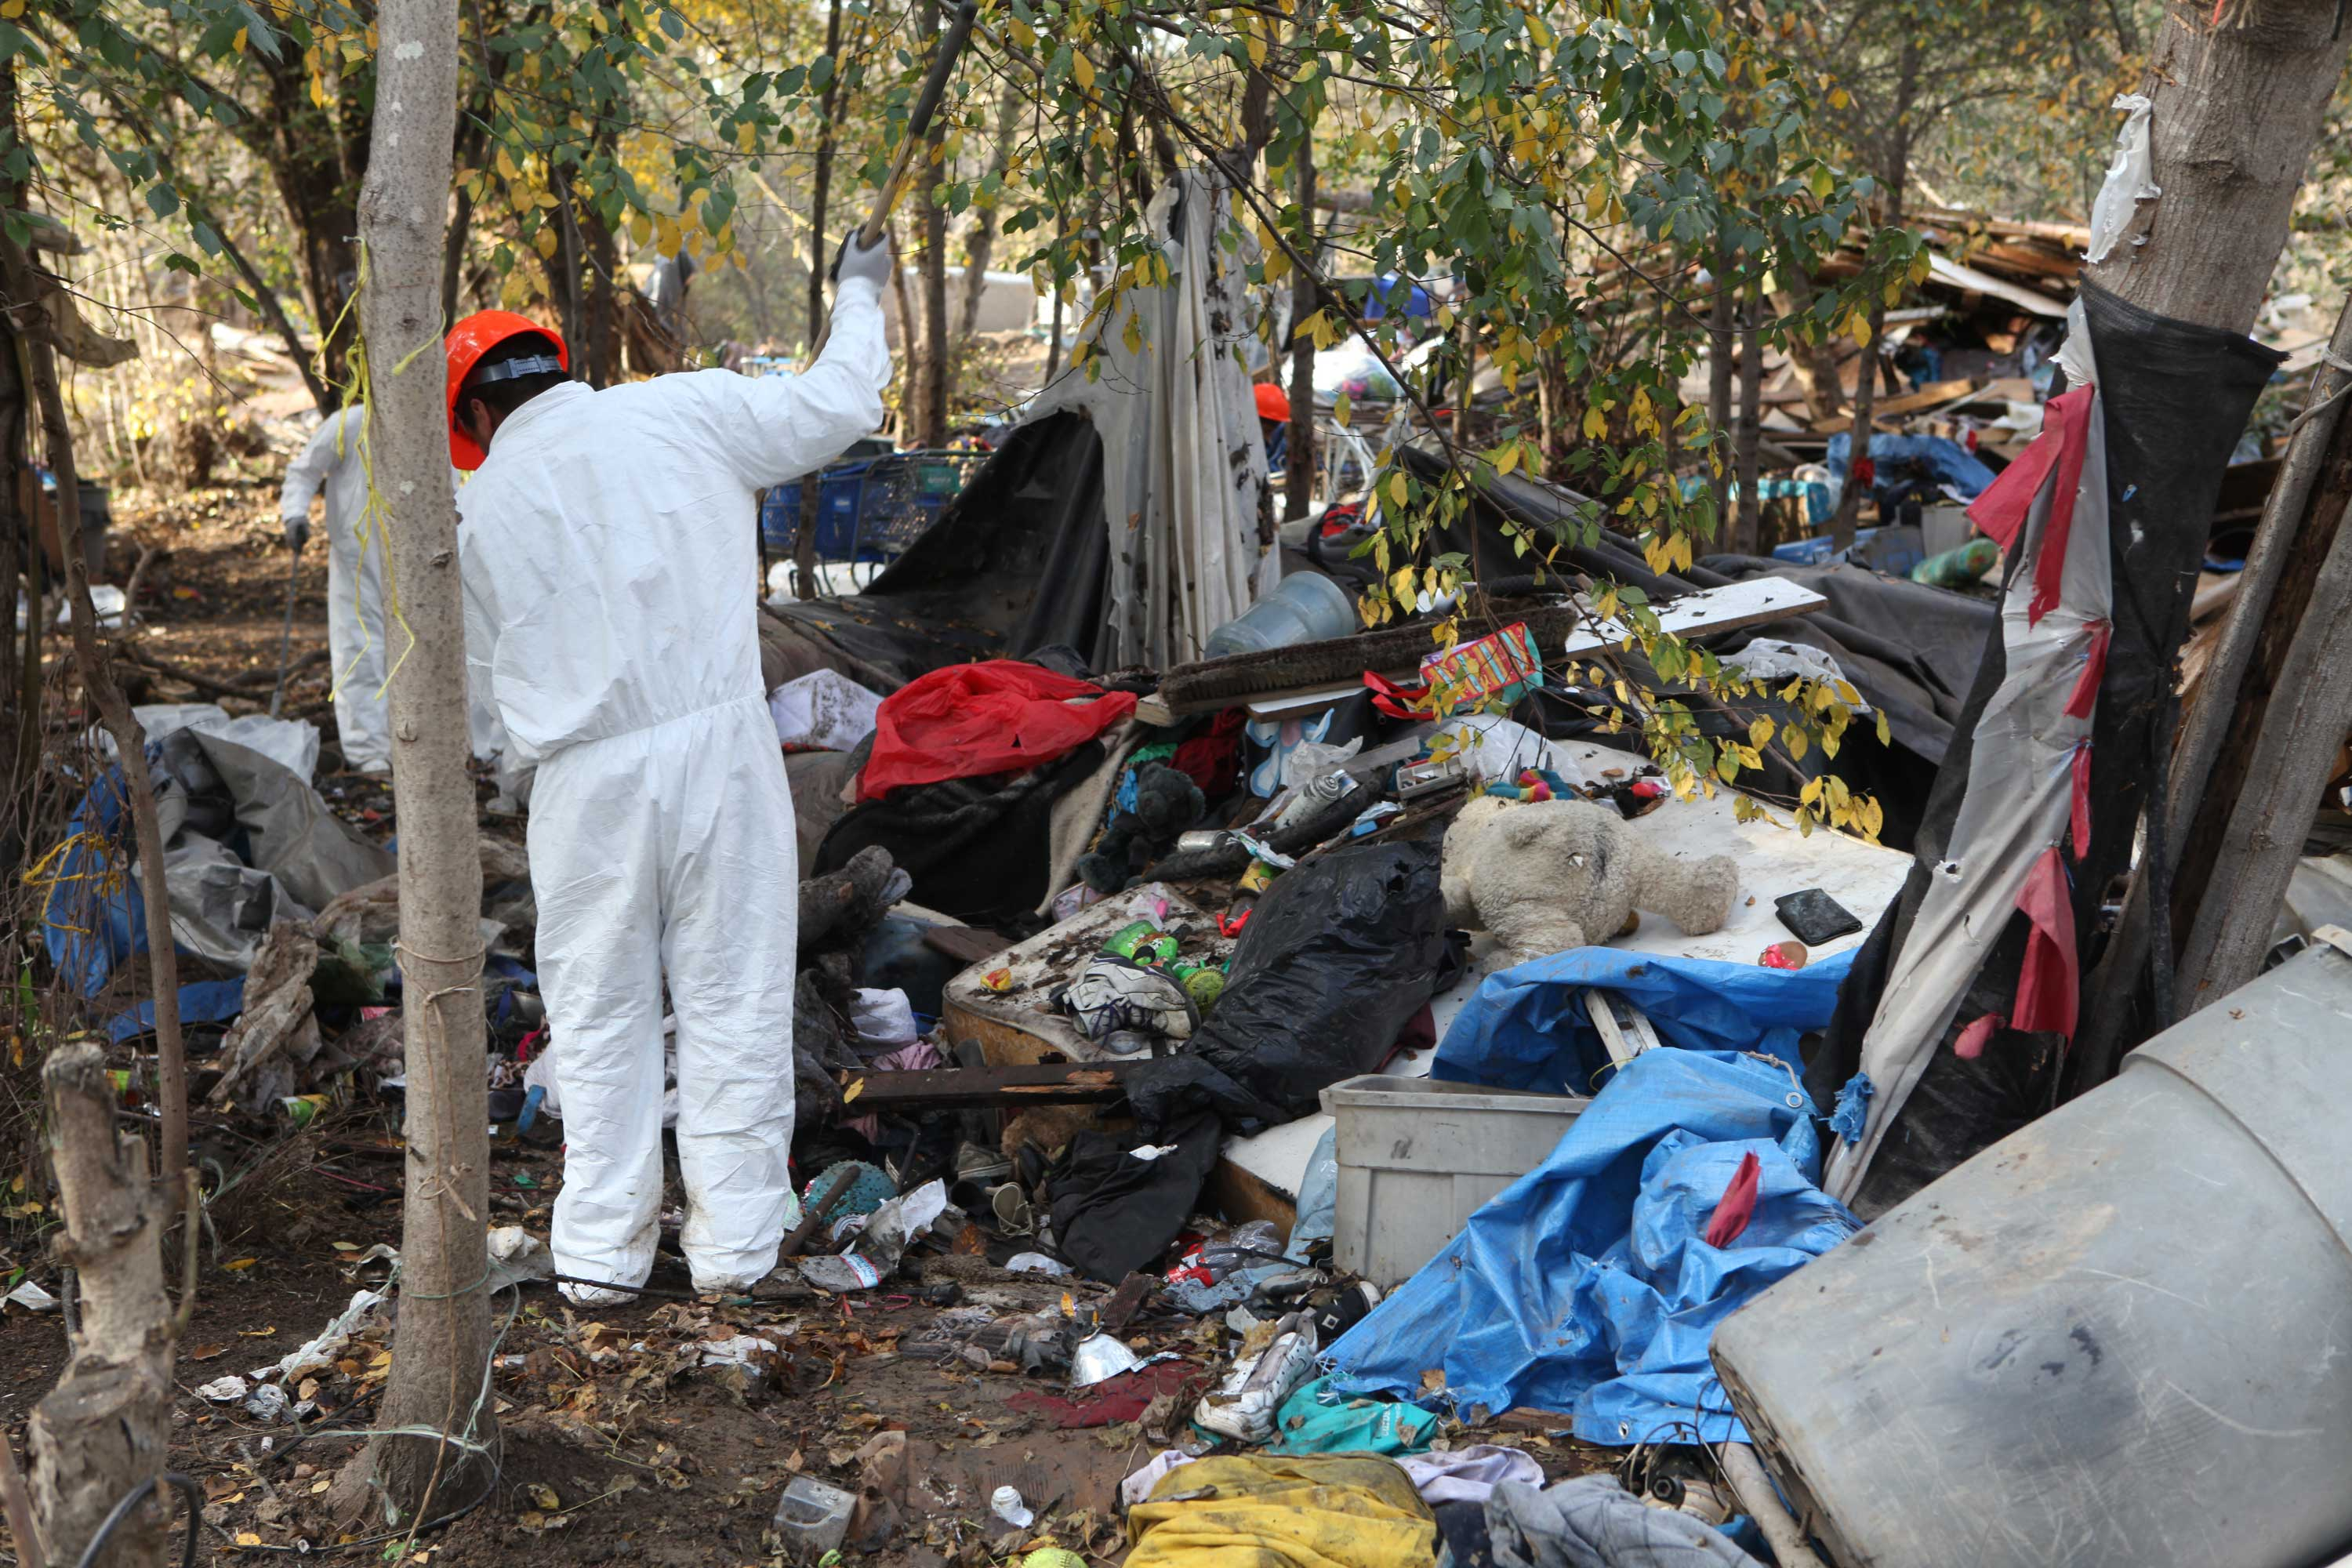 """A city worker cleans up the homeless encampment known as """"The Jungle"""" on Dec. 8, 2014, in San Jose. The City of San Jose shut down the encampment site on Dec. 4. (Yuqing Pan/Peninsula Press)"""